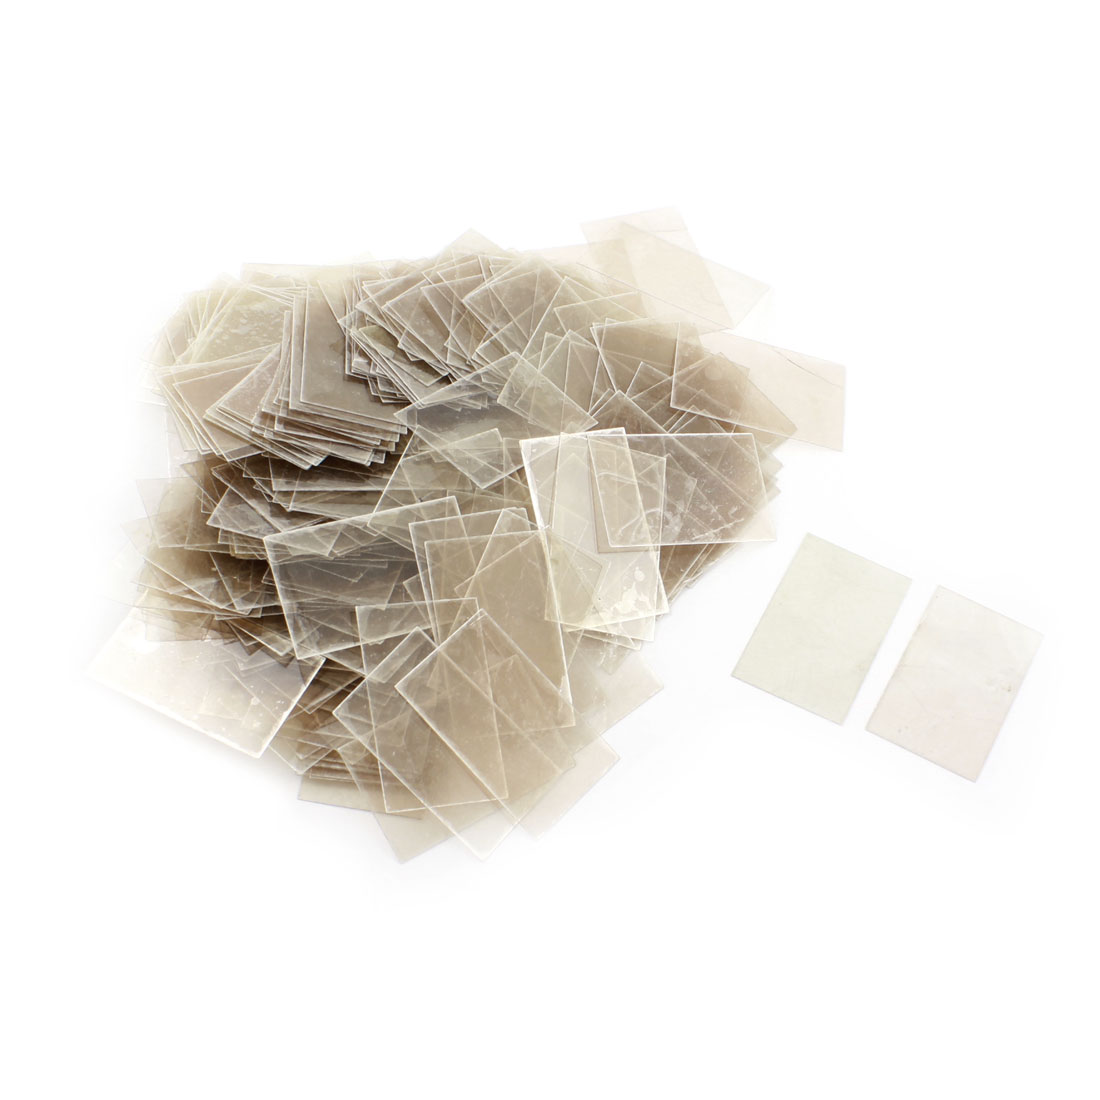 24mm x 39cm x 0.12mm Mica Insulator Sheets Replacement 300pcs